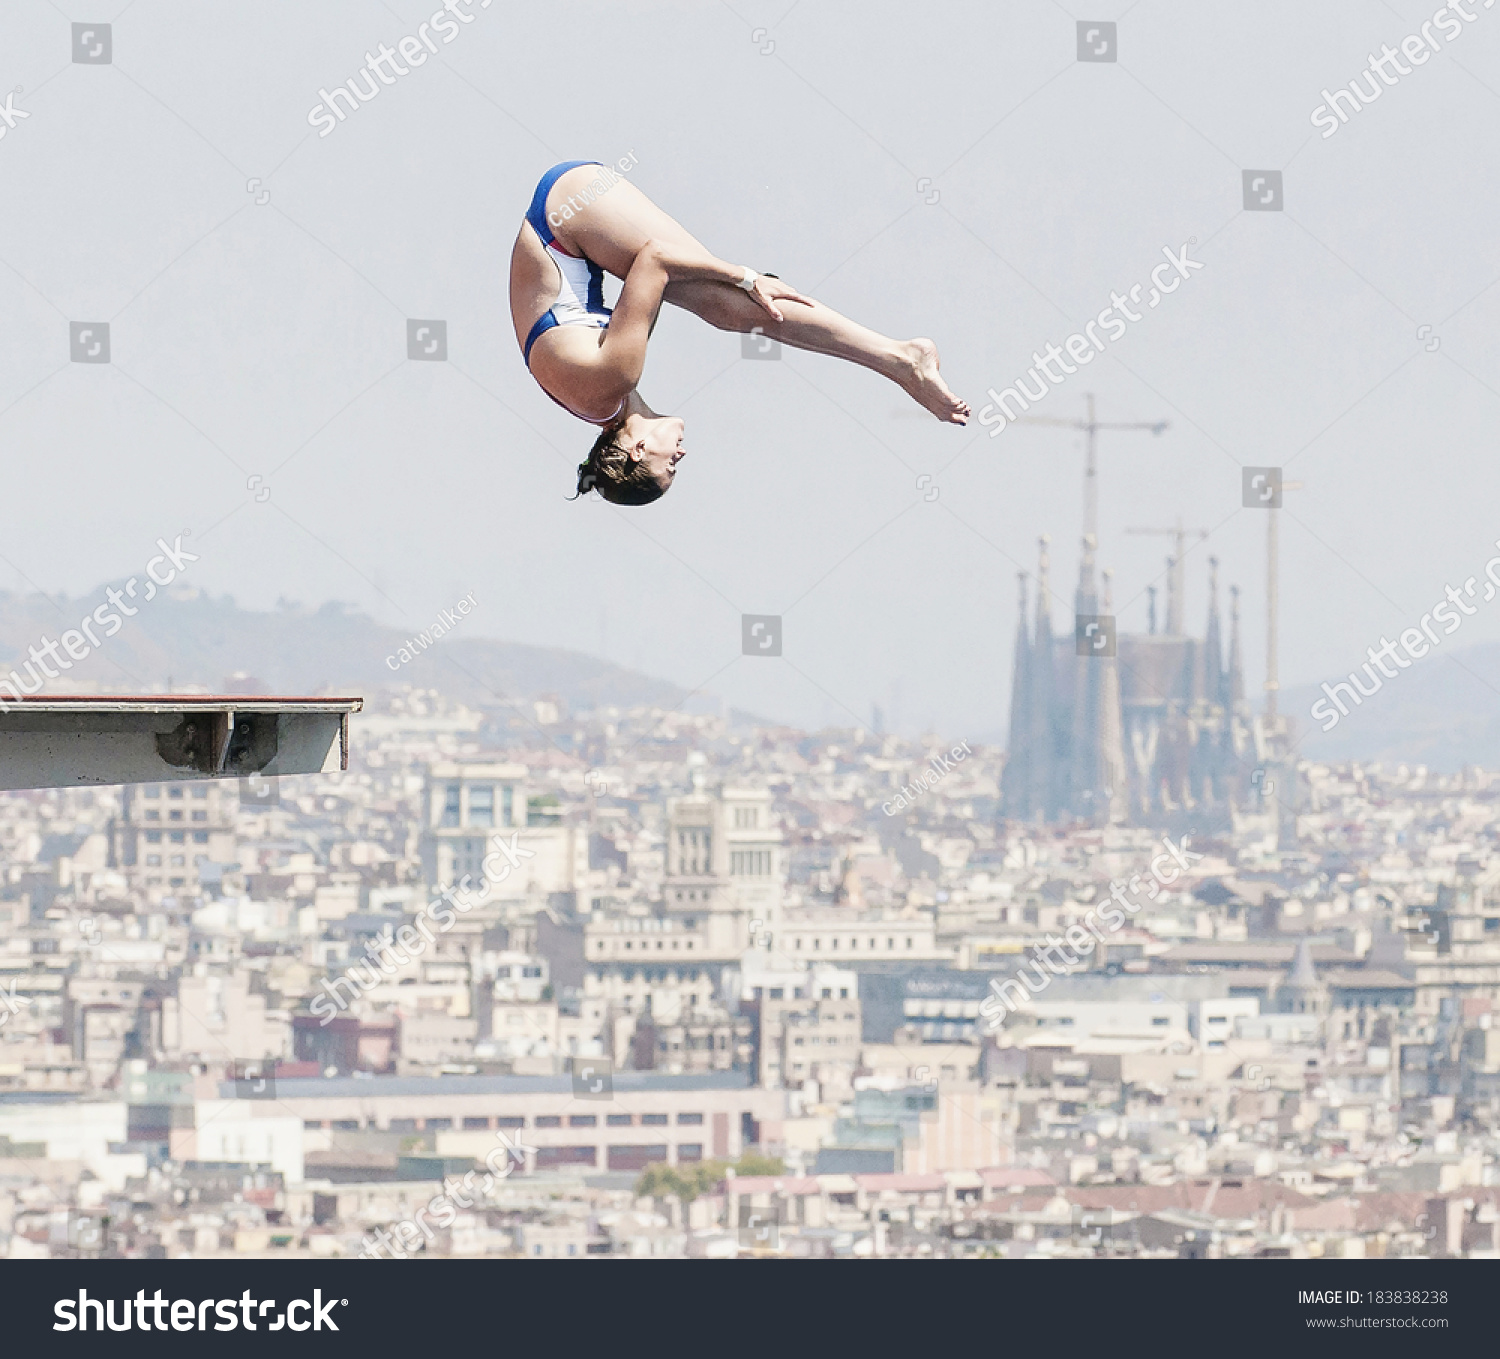 Barcelona july 20 diving athlete action stock photo for Swimming pool show barcelona